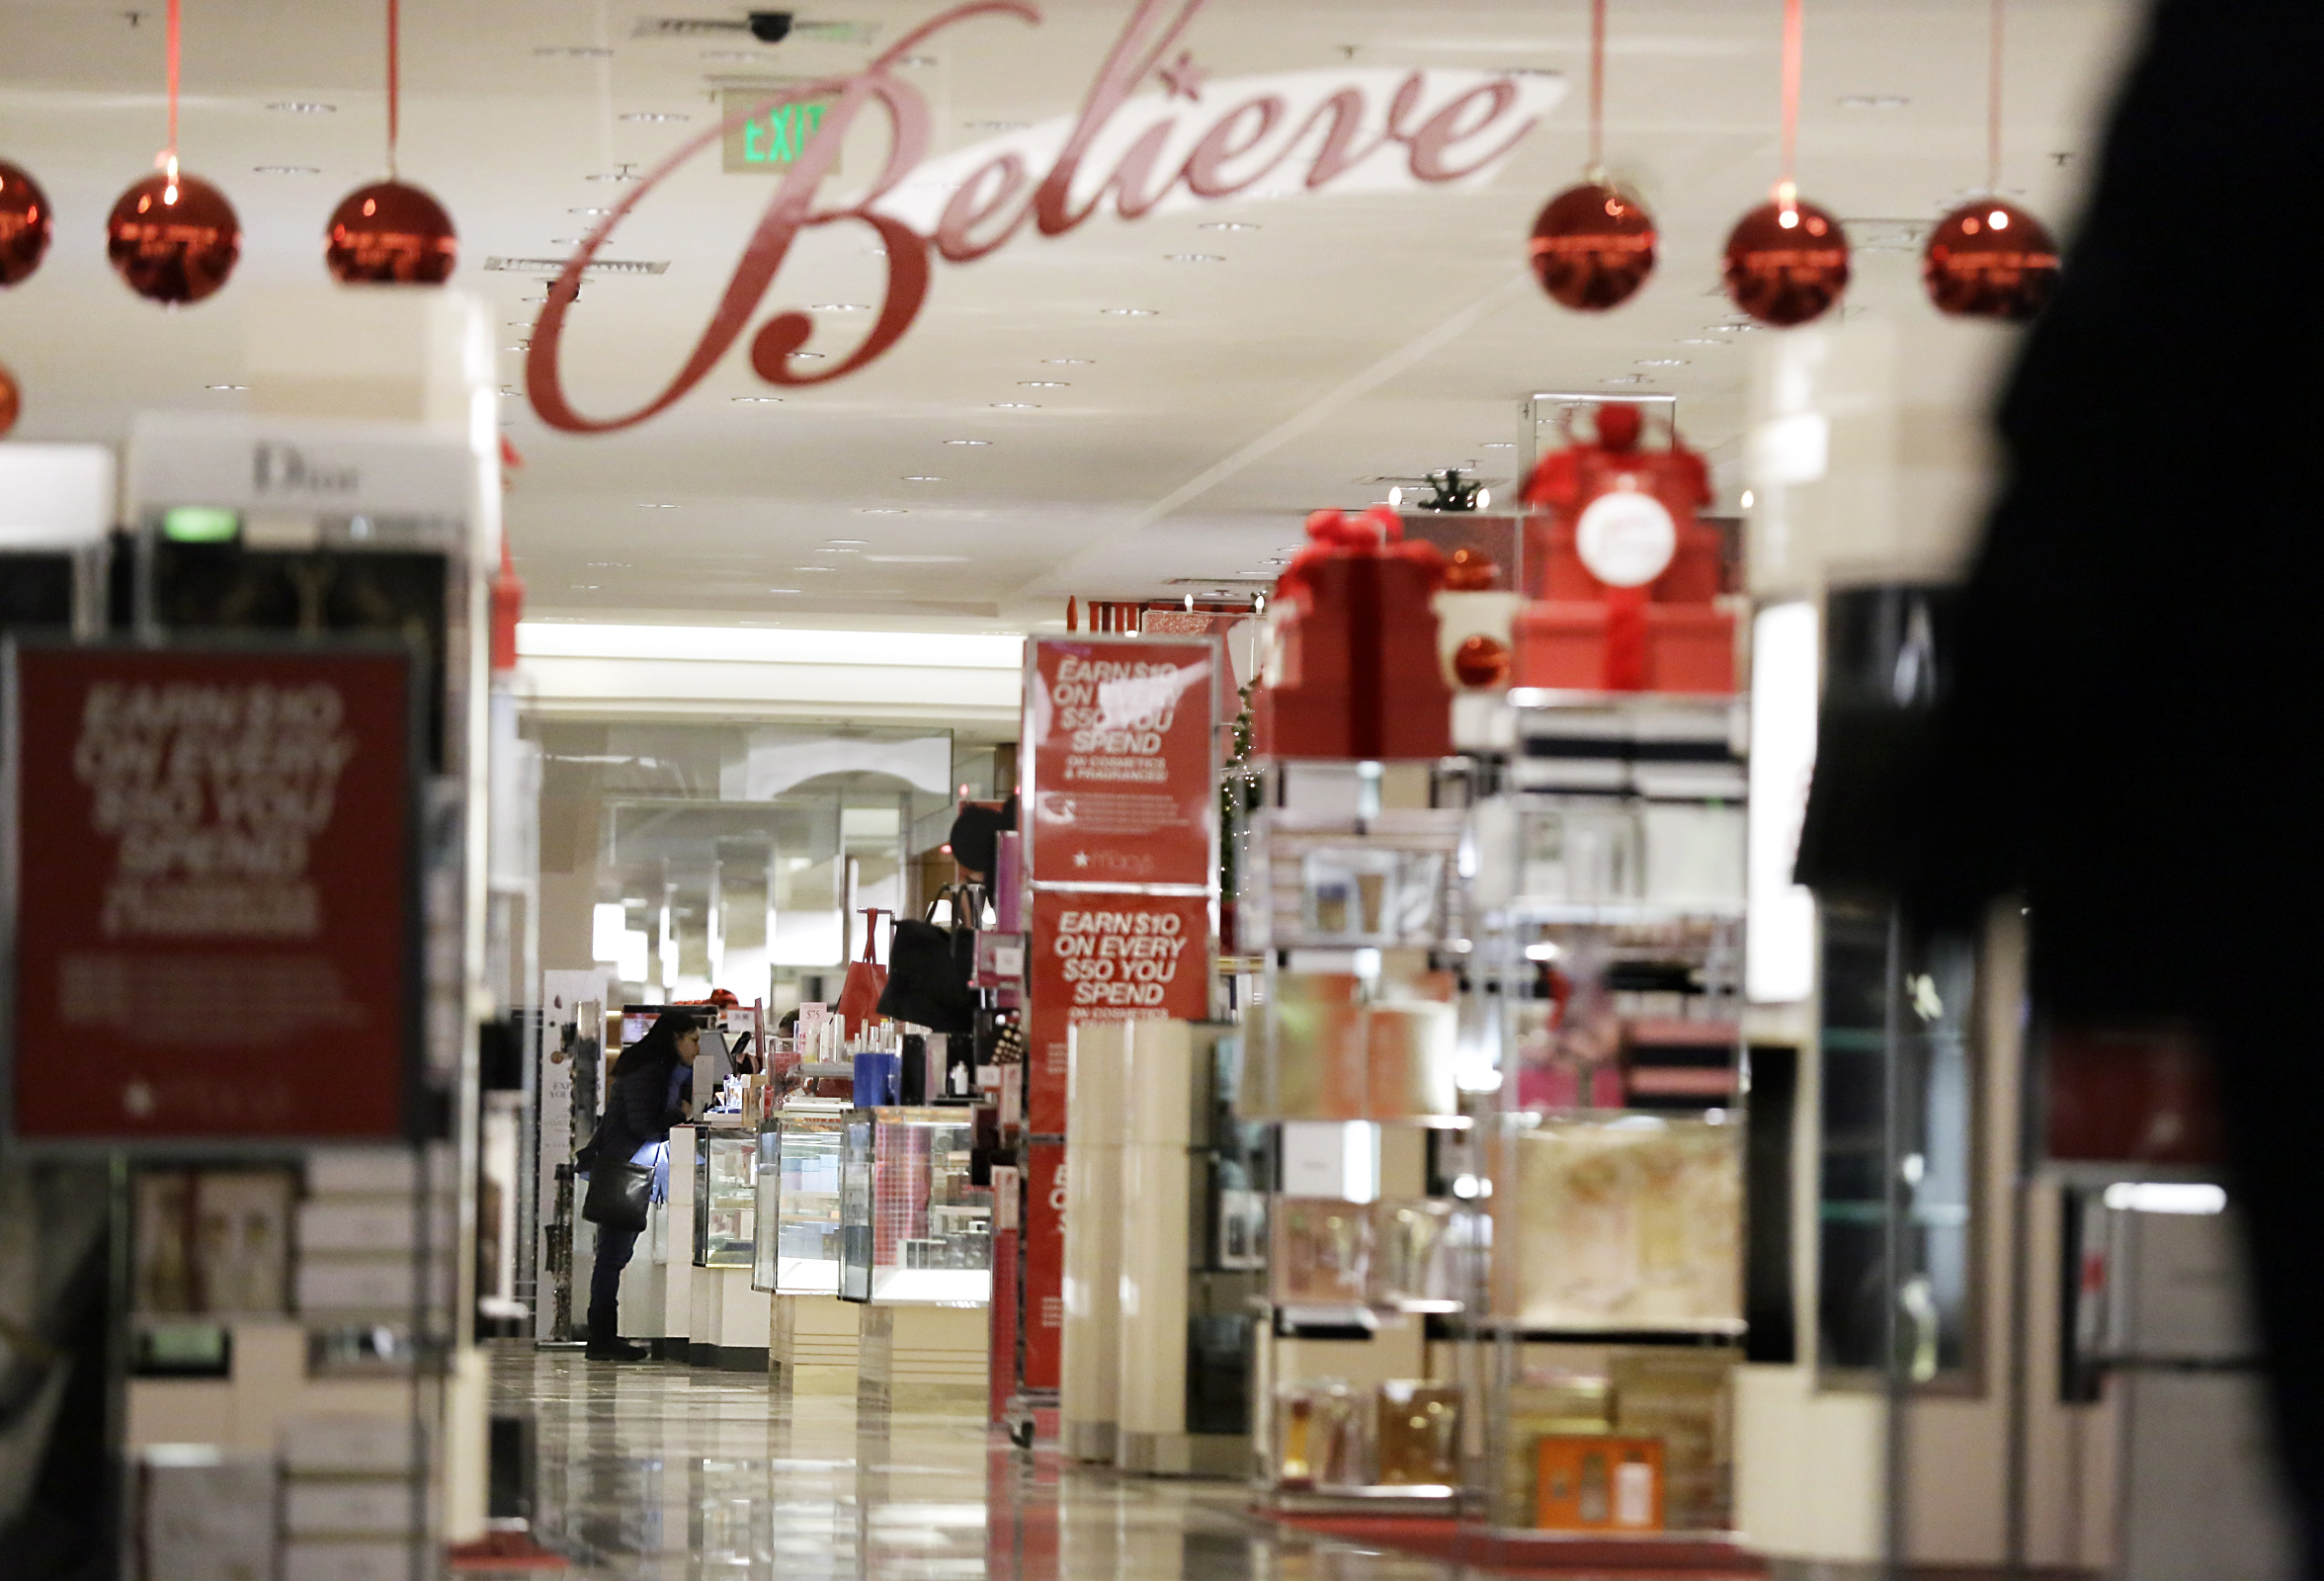 Department stores struggled this year as chains like Macy´s and Sears closed hundreds more stores - including this former Macy´s at Moorestown Mall in Moorestown, N.J. that closed in March 2017.